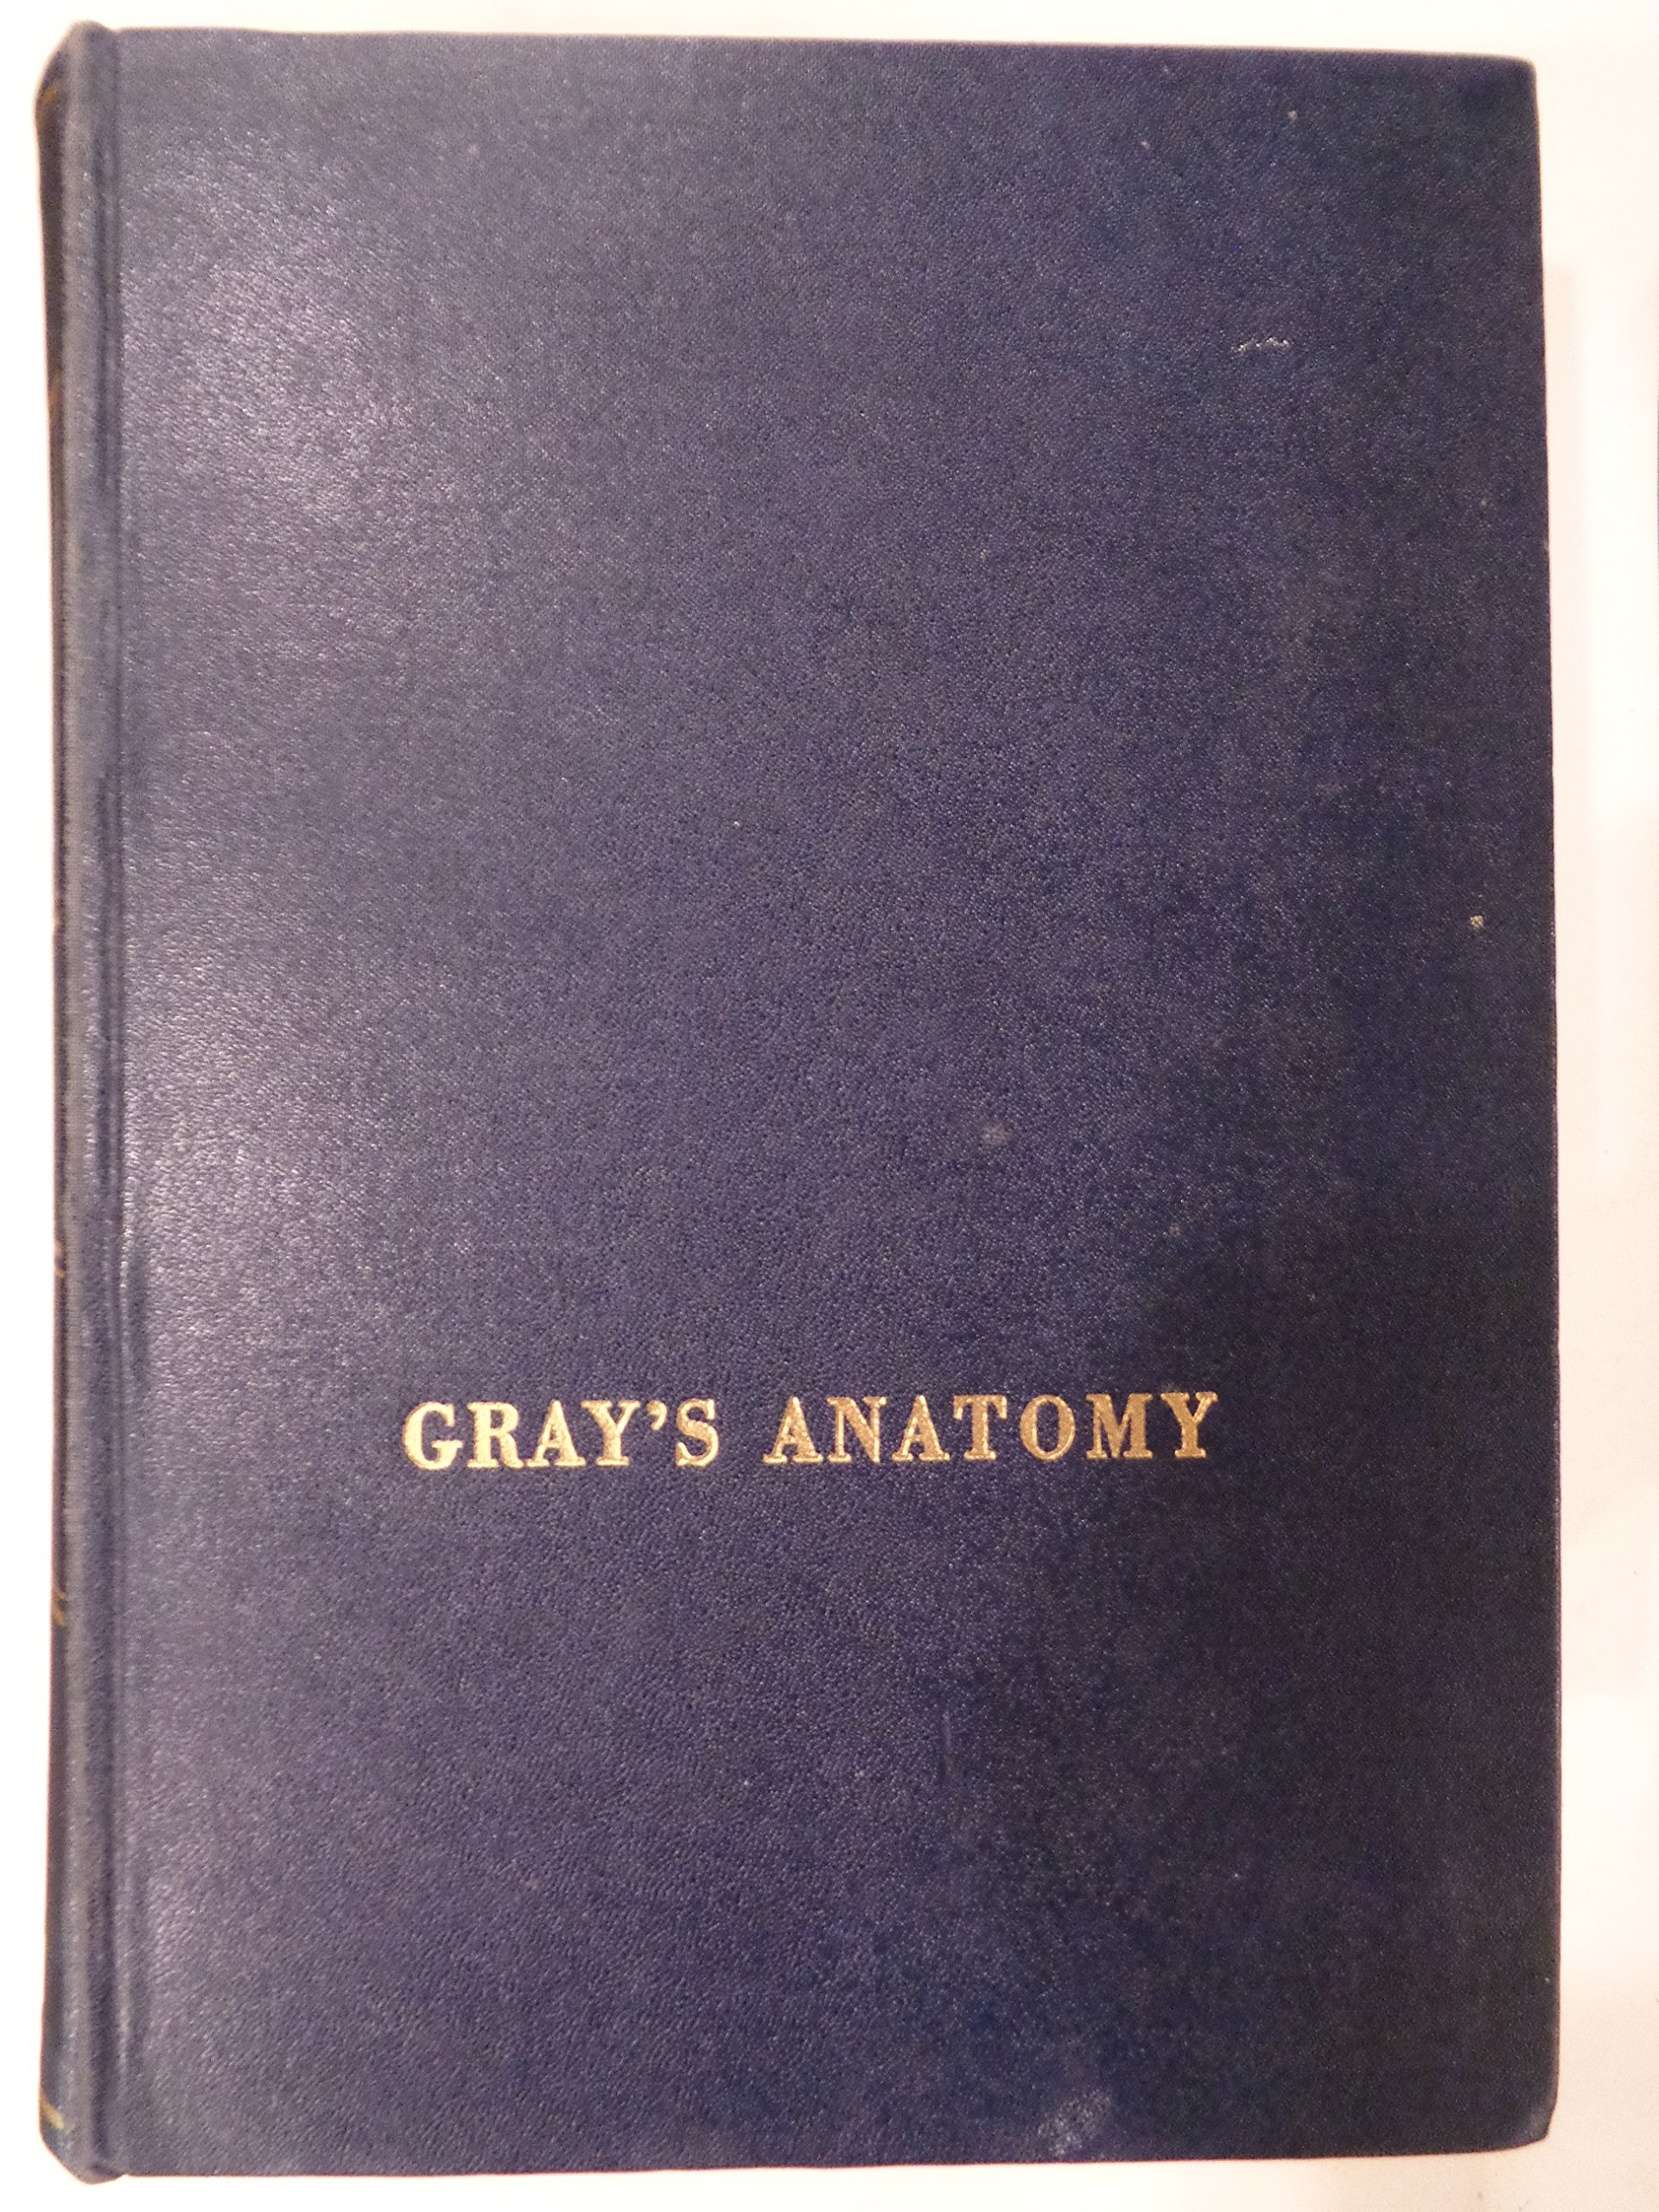 Grays Anatomy Anatomy Of The Human Body 26th Edition Henry Gray